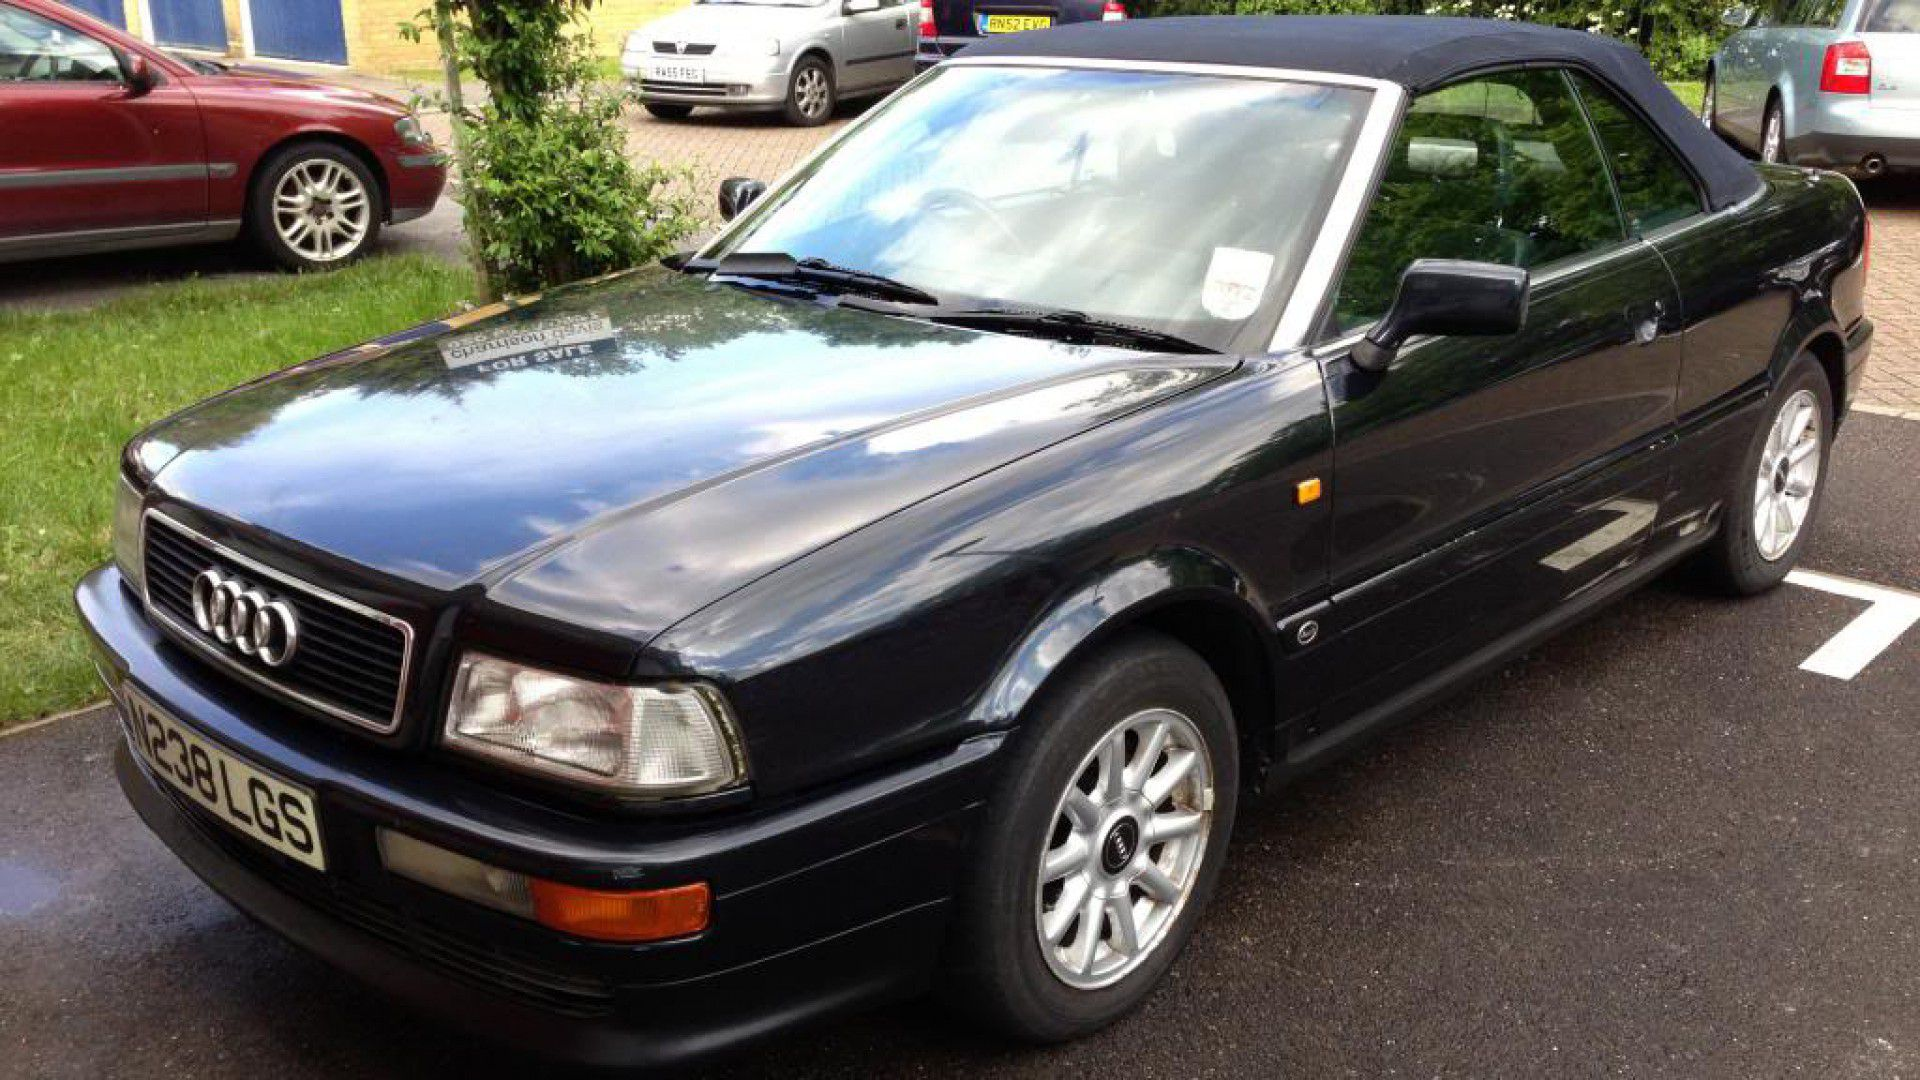 Audi Cabriolet (1990 to 2000)